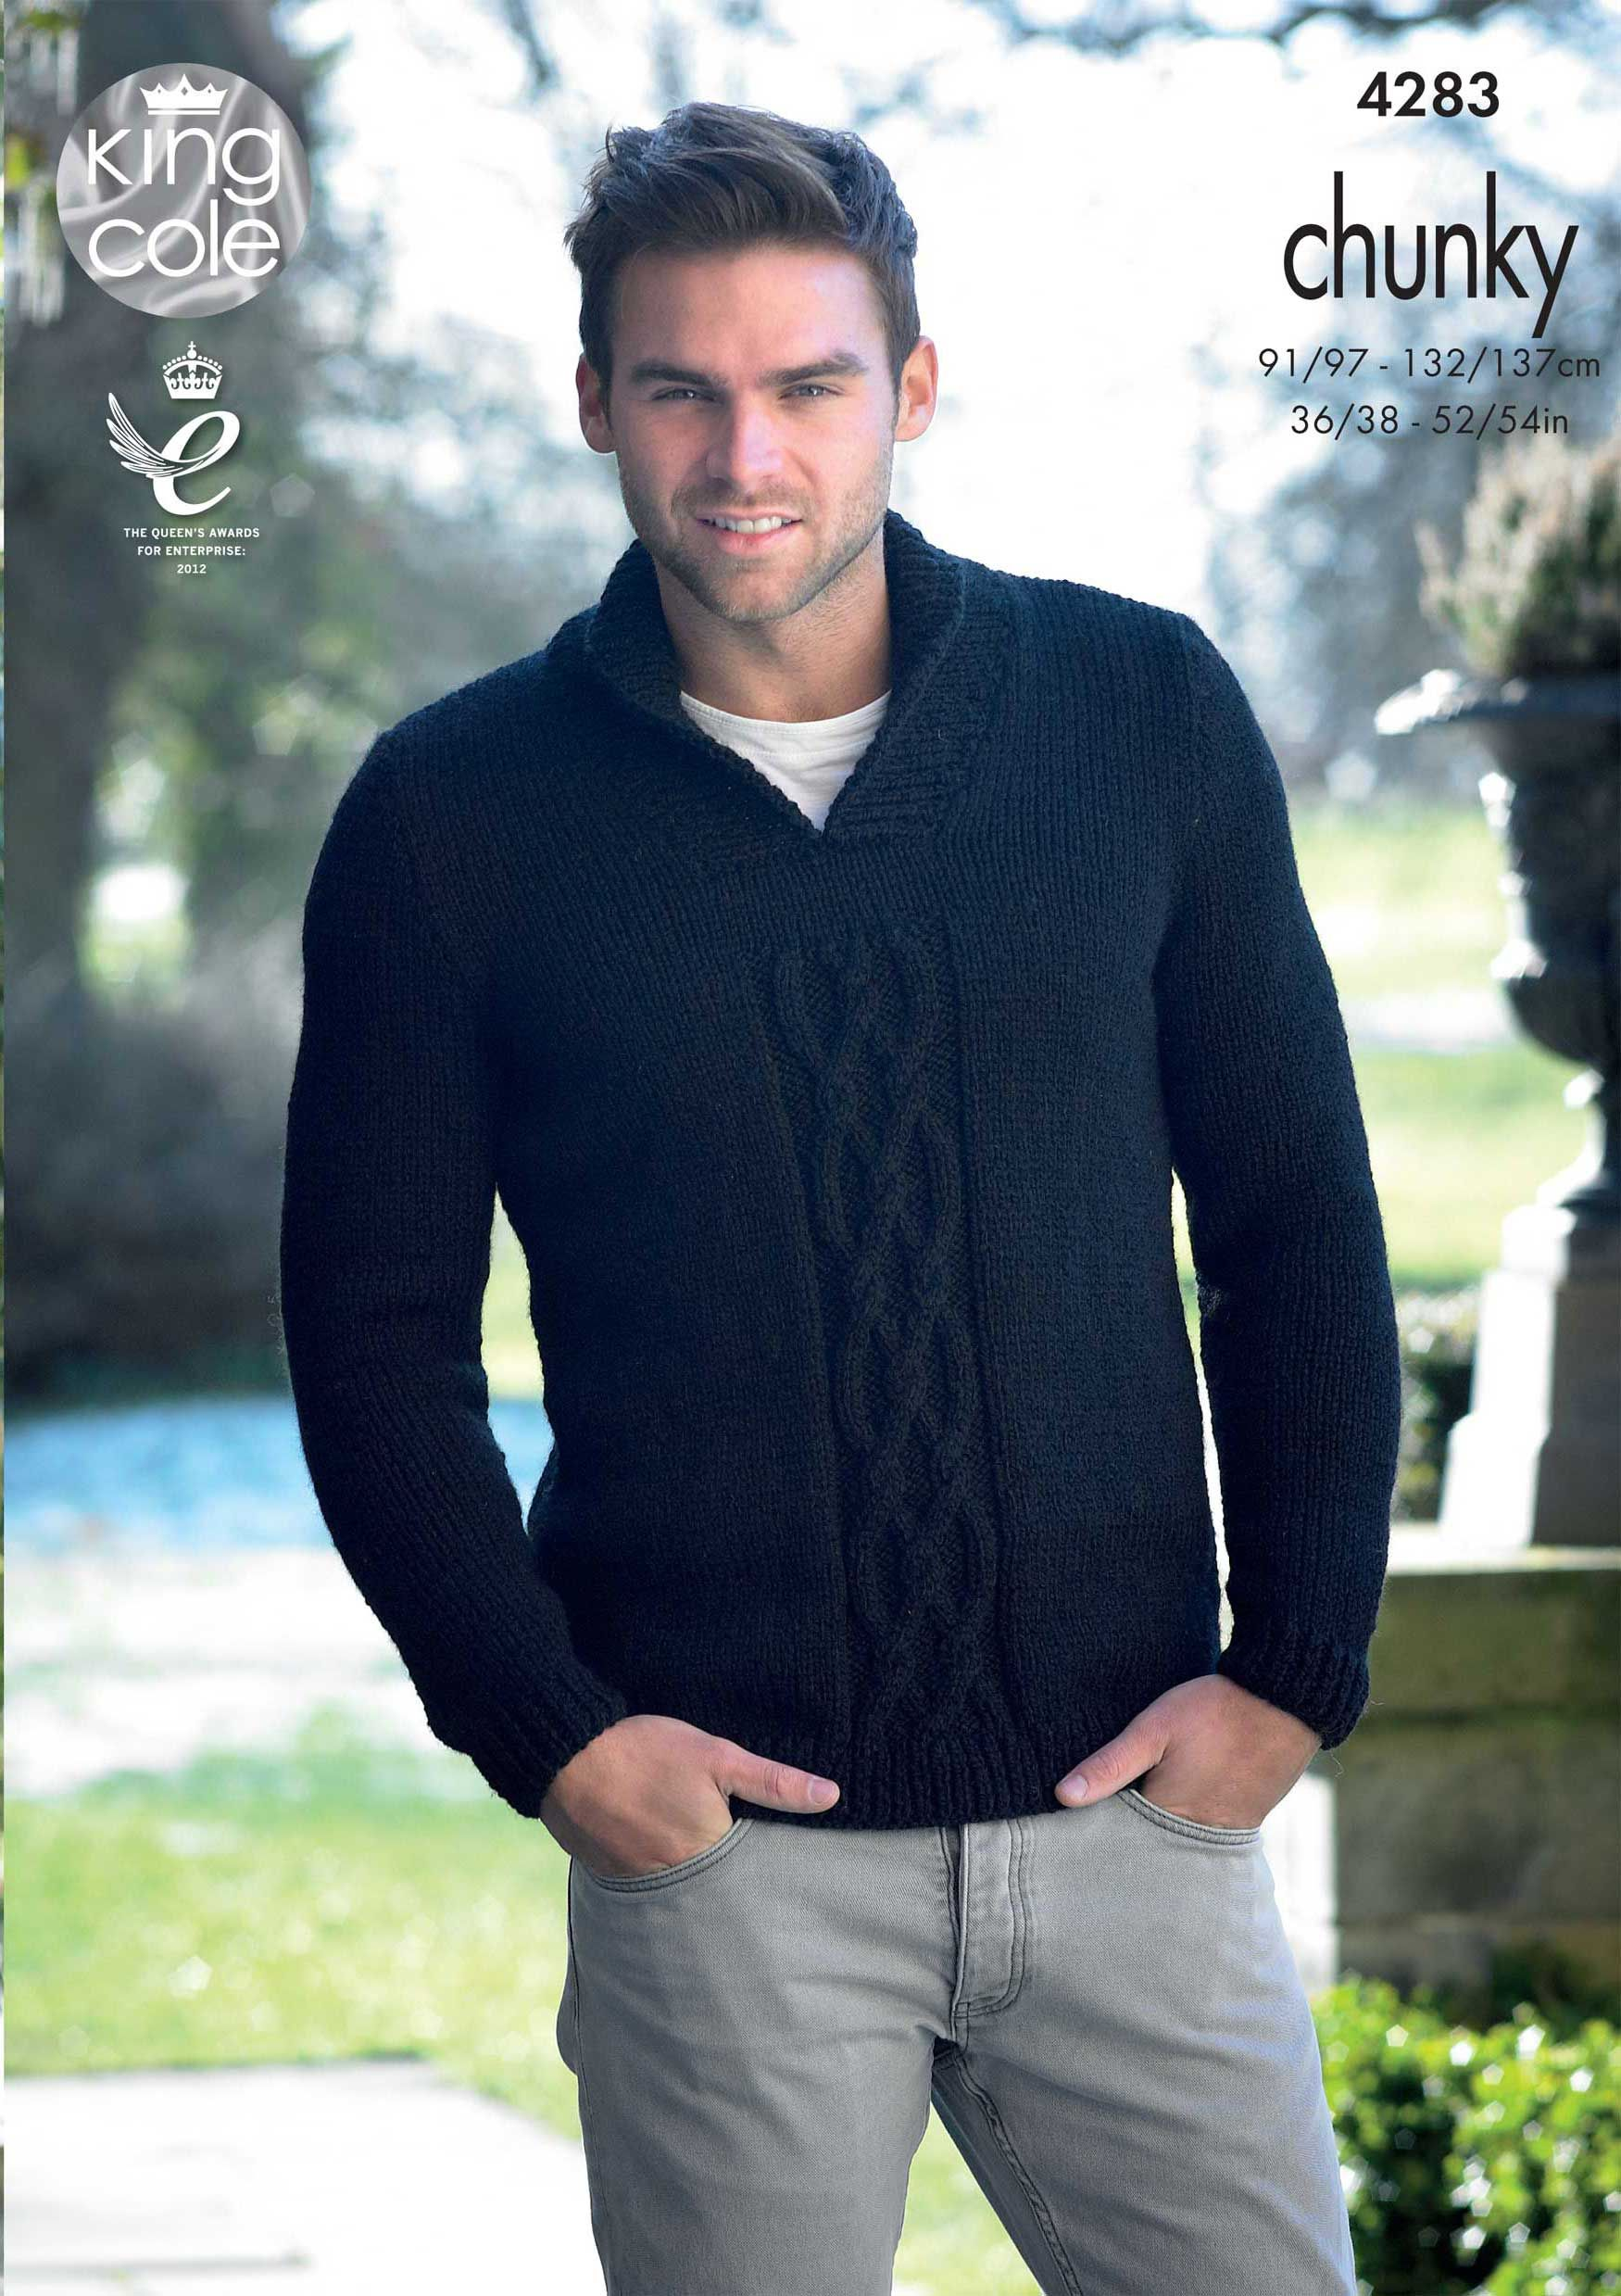 Mens Sweater and Slipover - King Cole | Knitting patterns ...